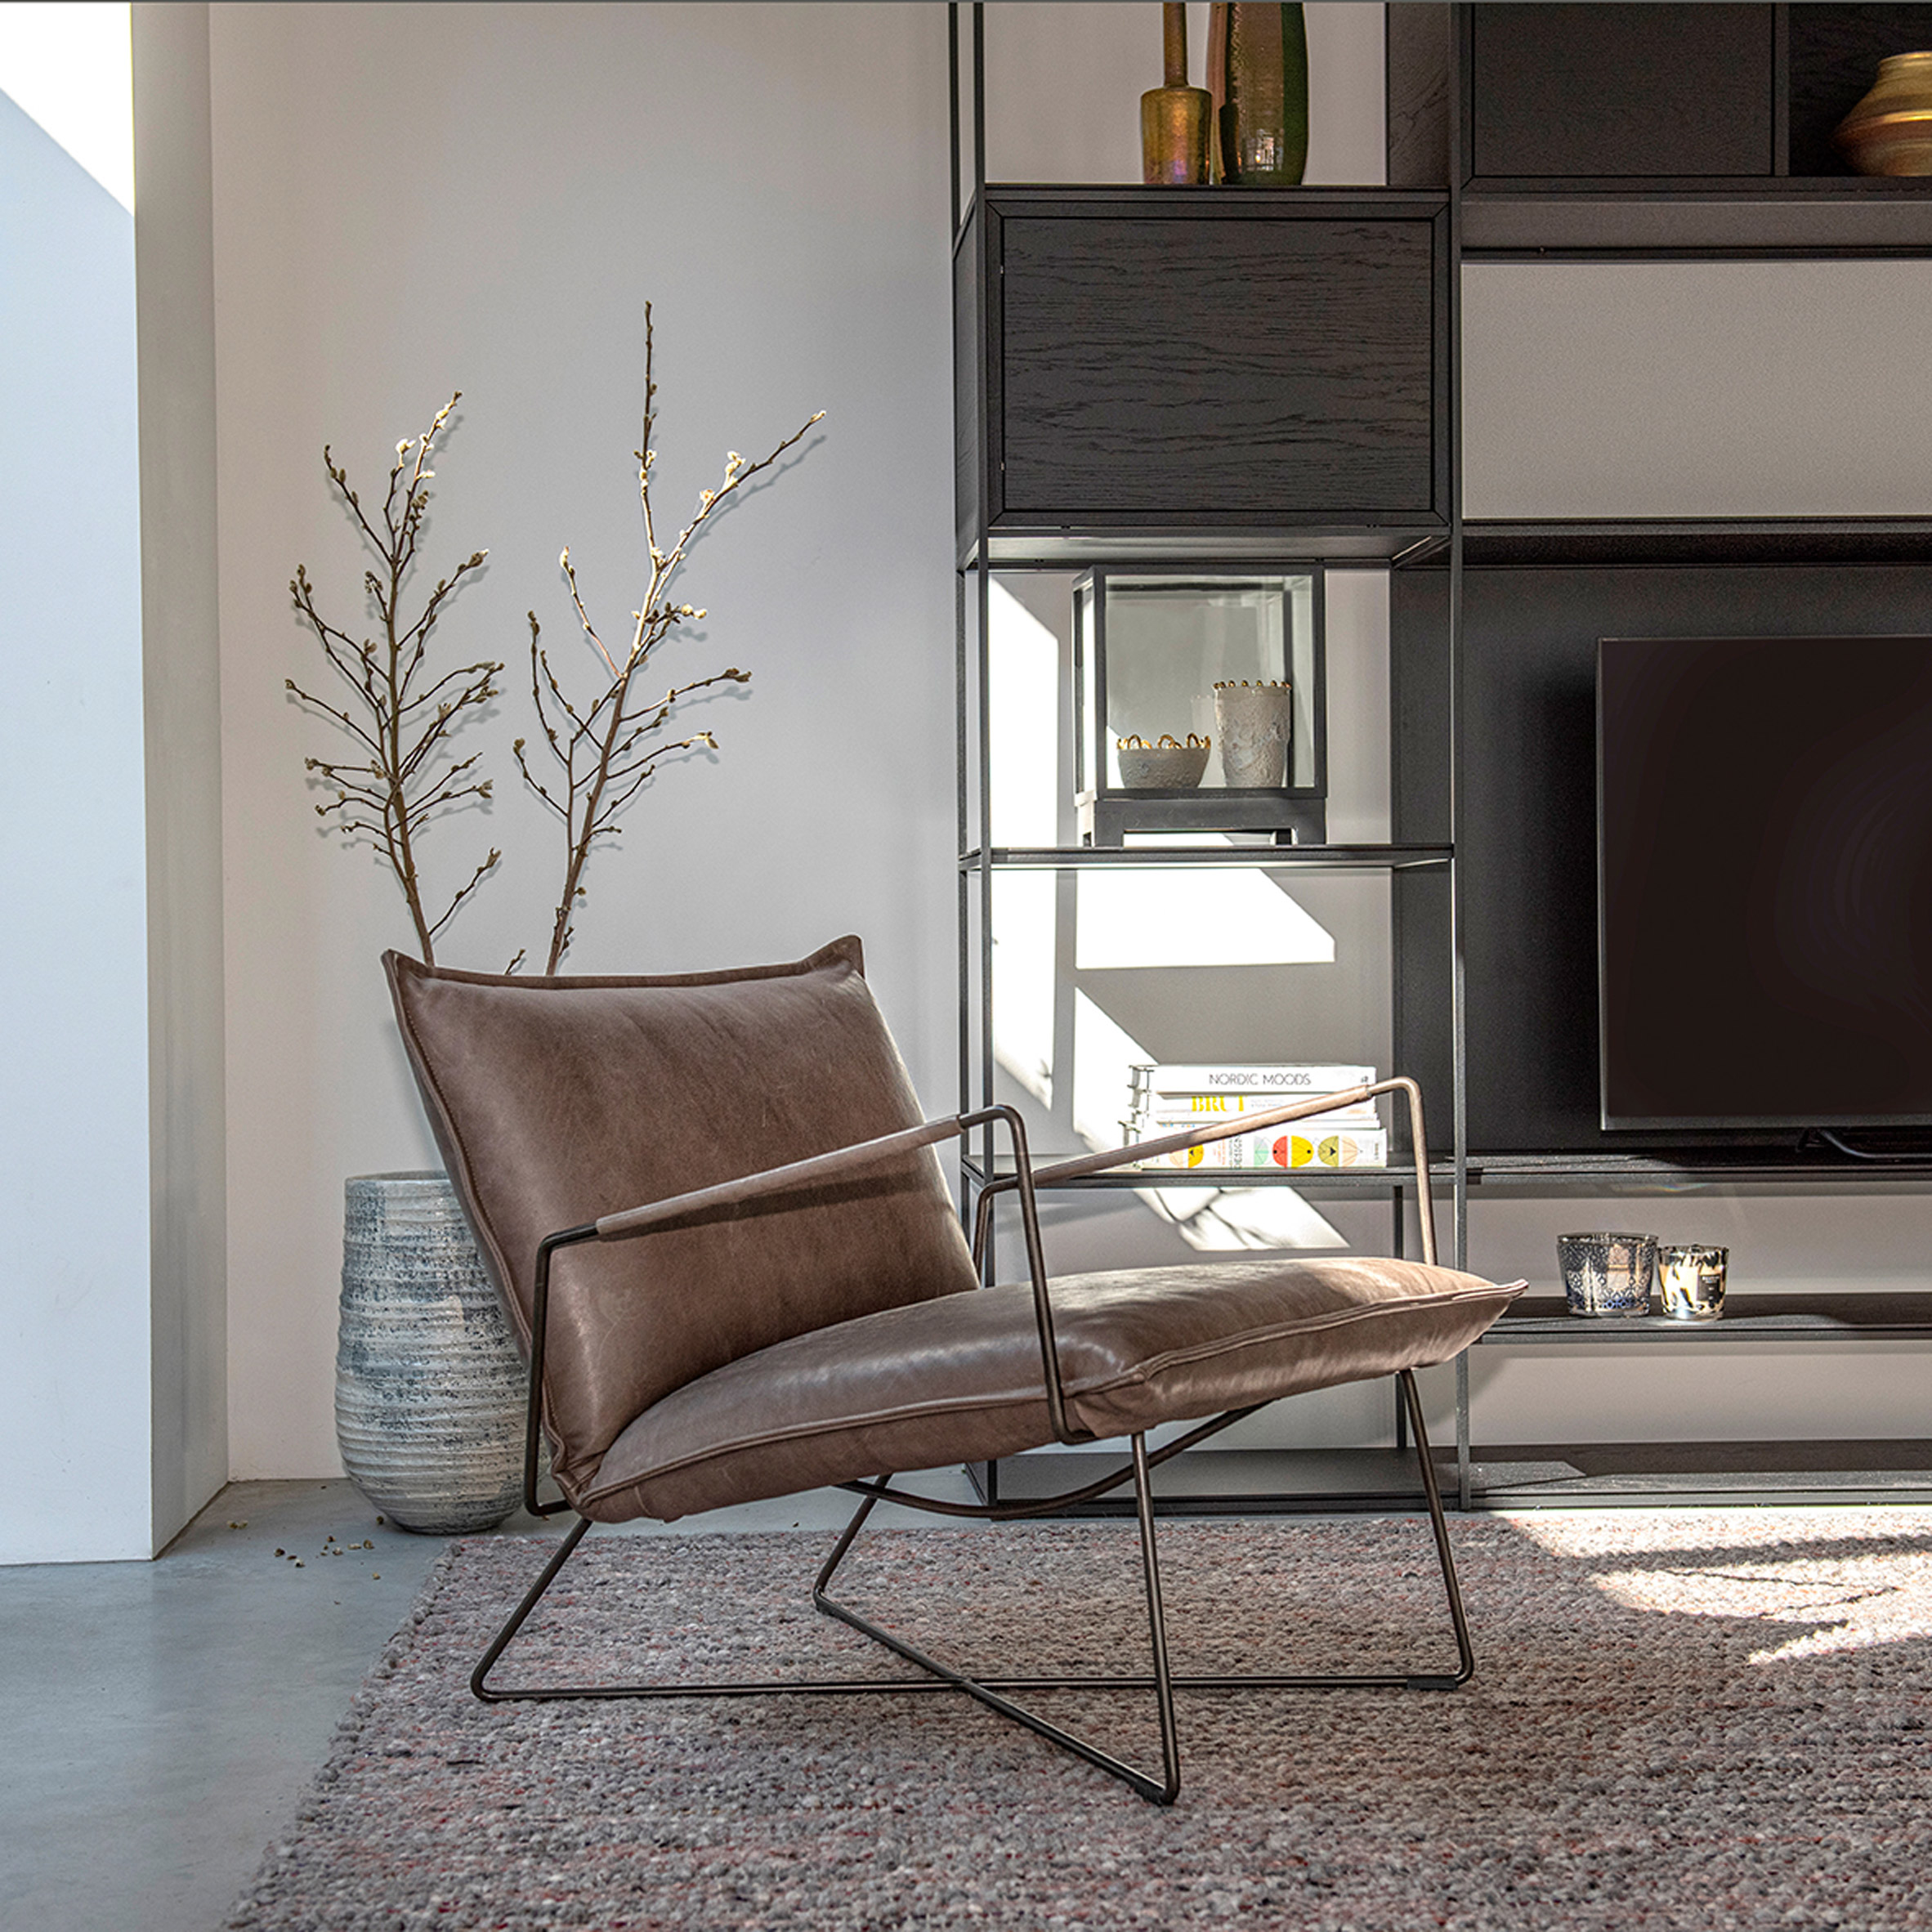 Earl lounge chair by Jess